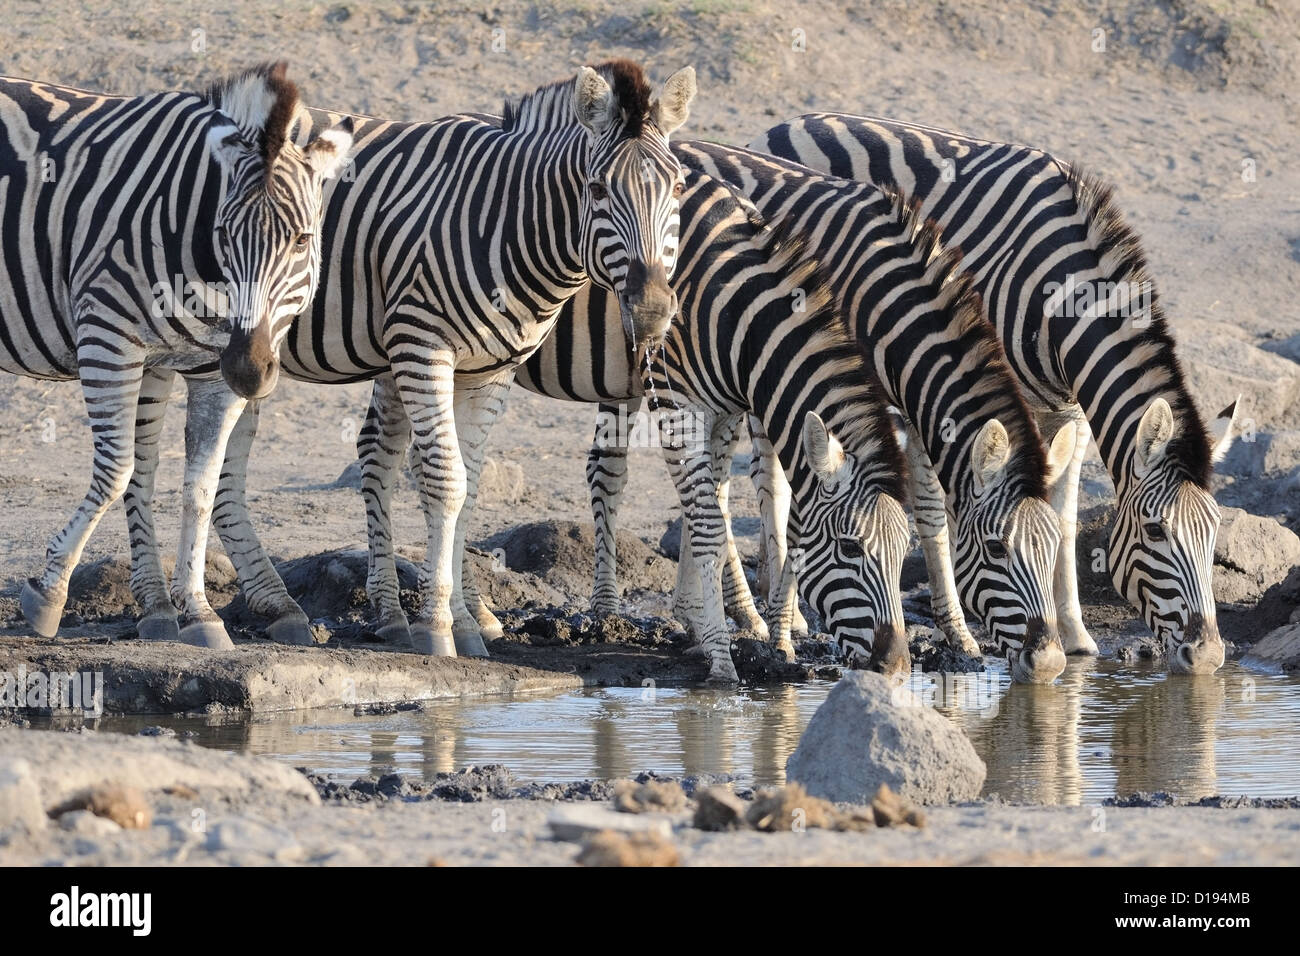 Burchell's zebras (Equus quagga burchellii) drinking at waterhole, Kruger National Park, South Africa, Africa Stock Photo